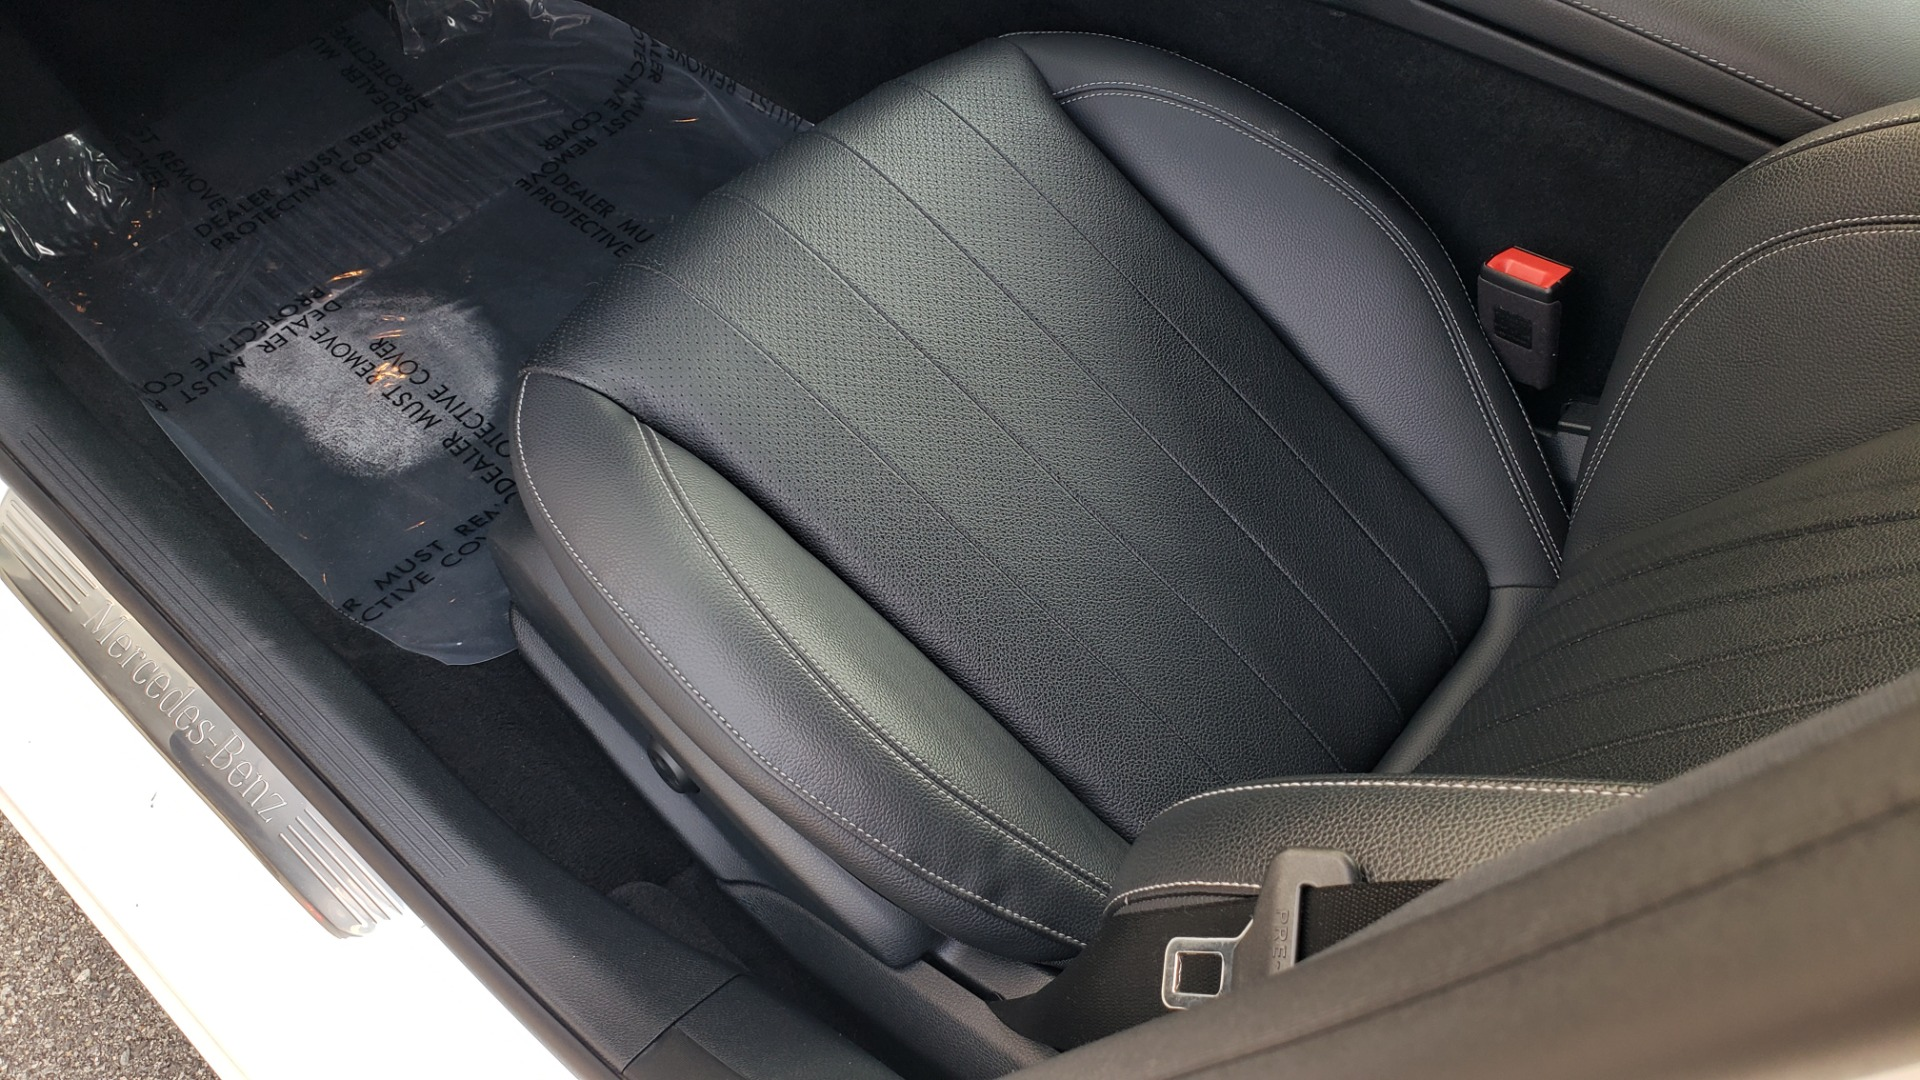 Used 2018 Mercedes-Benz E-CLASS E 300 4MATIC / PREMIUM / NAV / PANO-ROOF / BURMESTER / REARVIEW for sale $41,995 at Formula Imports in Charlotte NC 28227 29